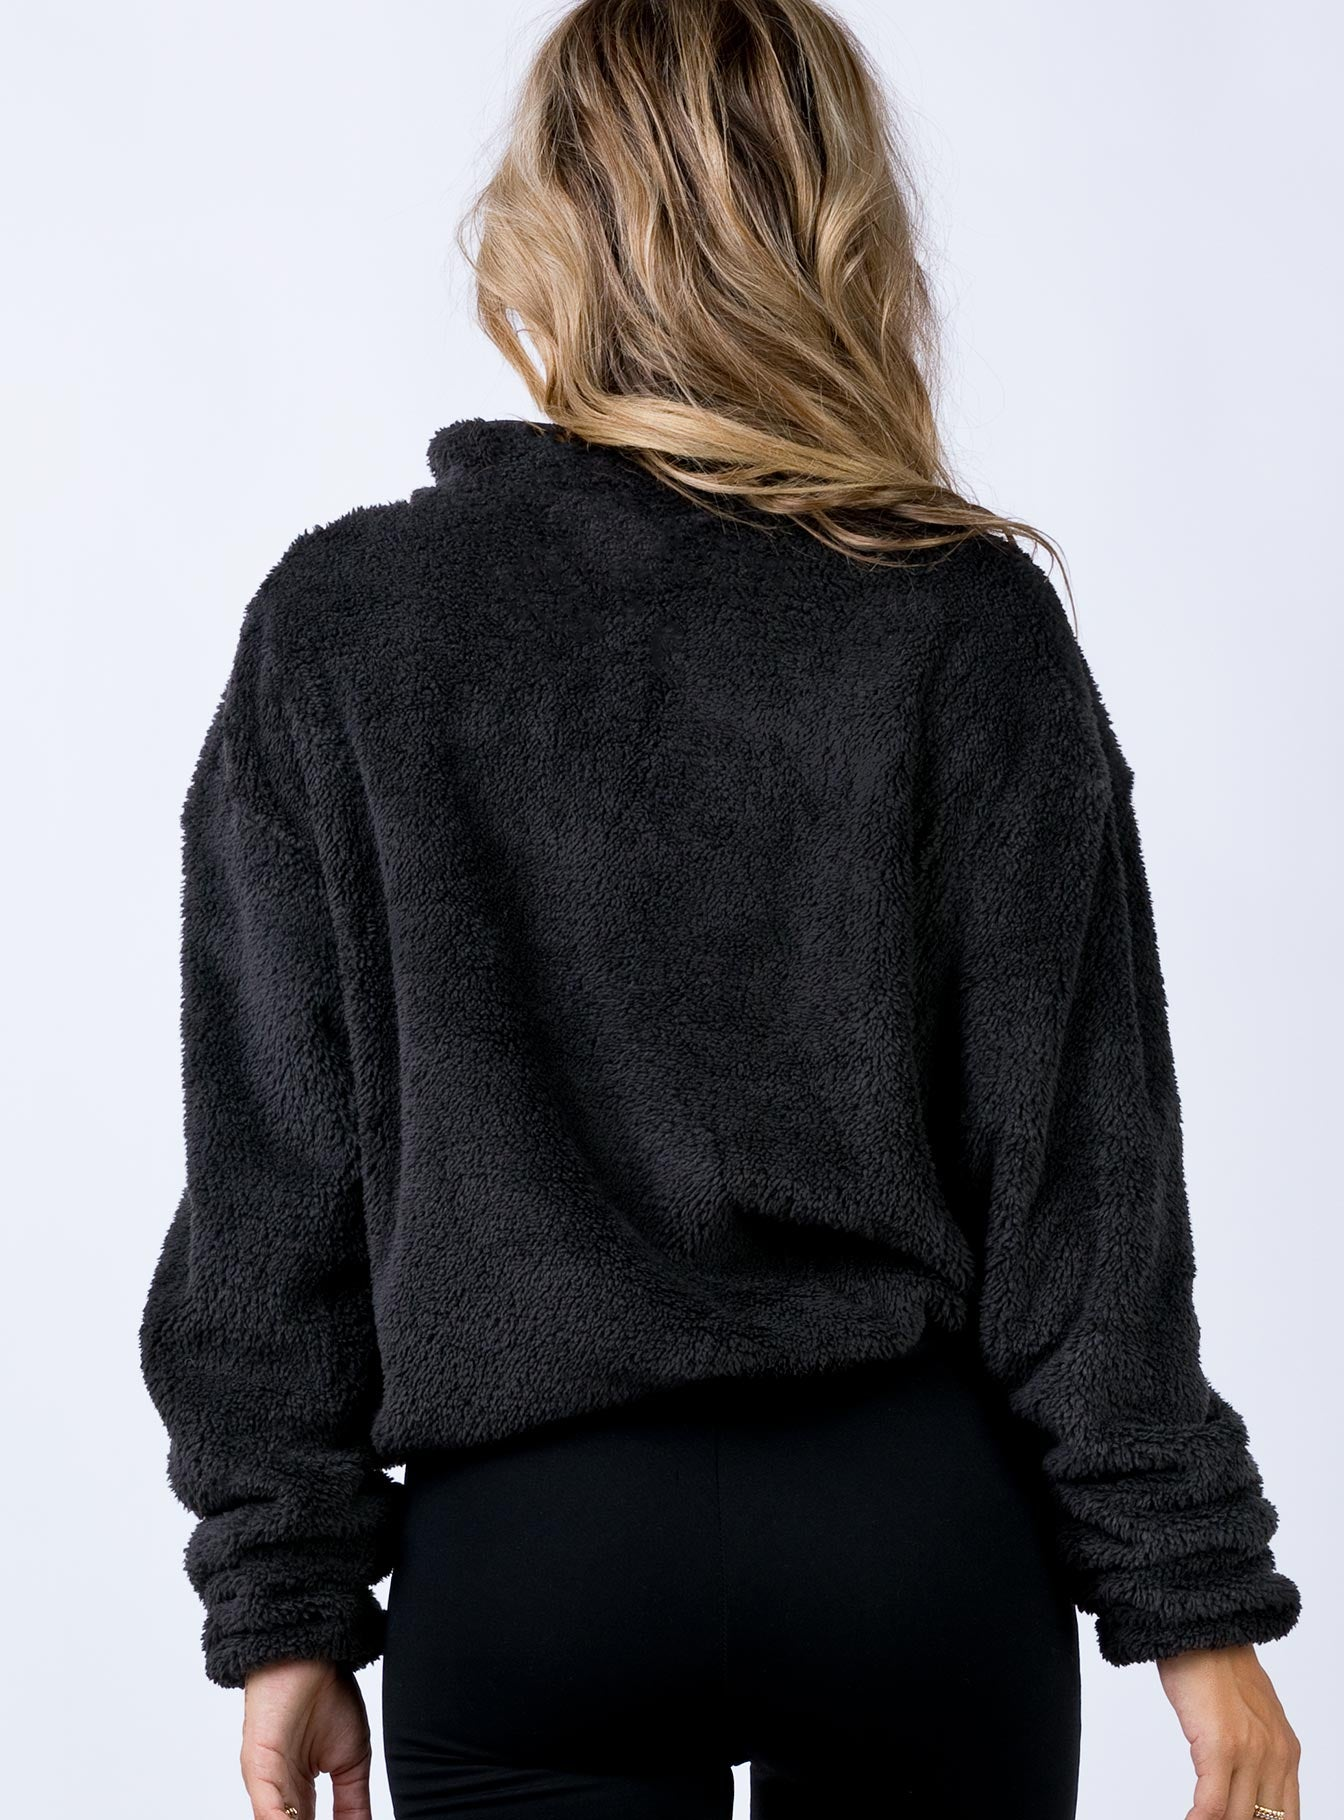 Winter Warmth Cropped Jumper Black